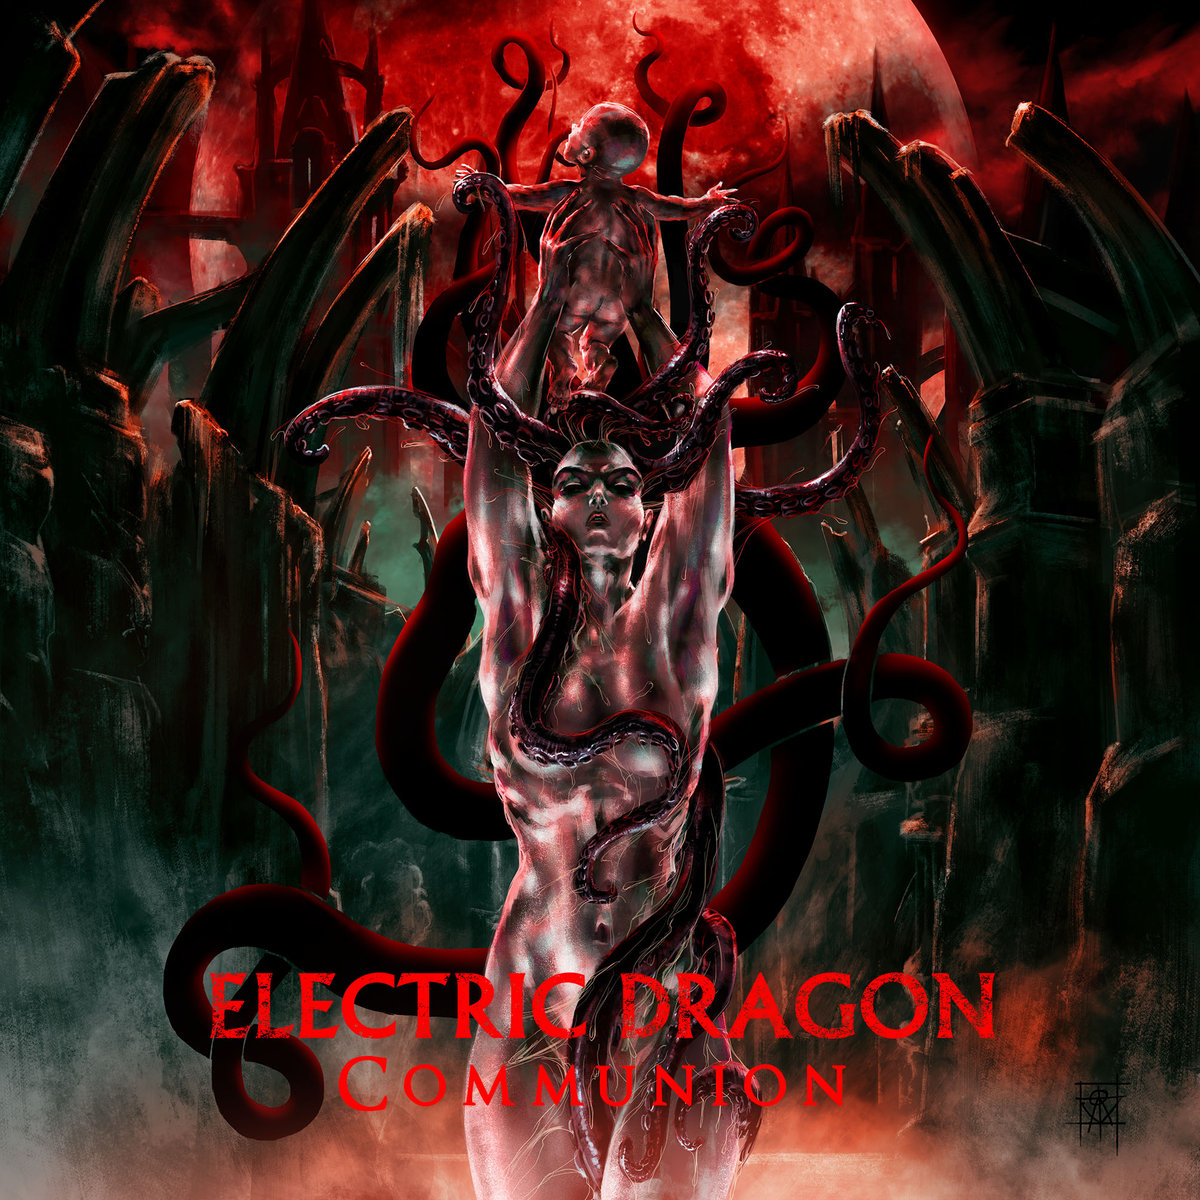 Electric DragonCommunion-Electric Dragon-Art